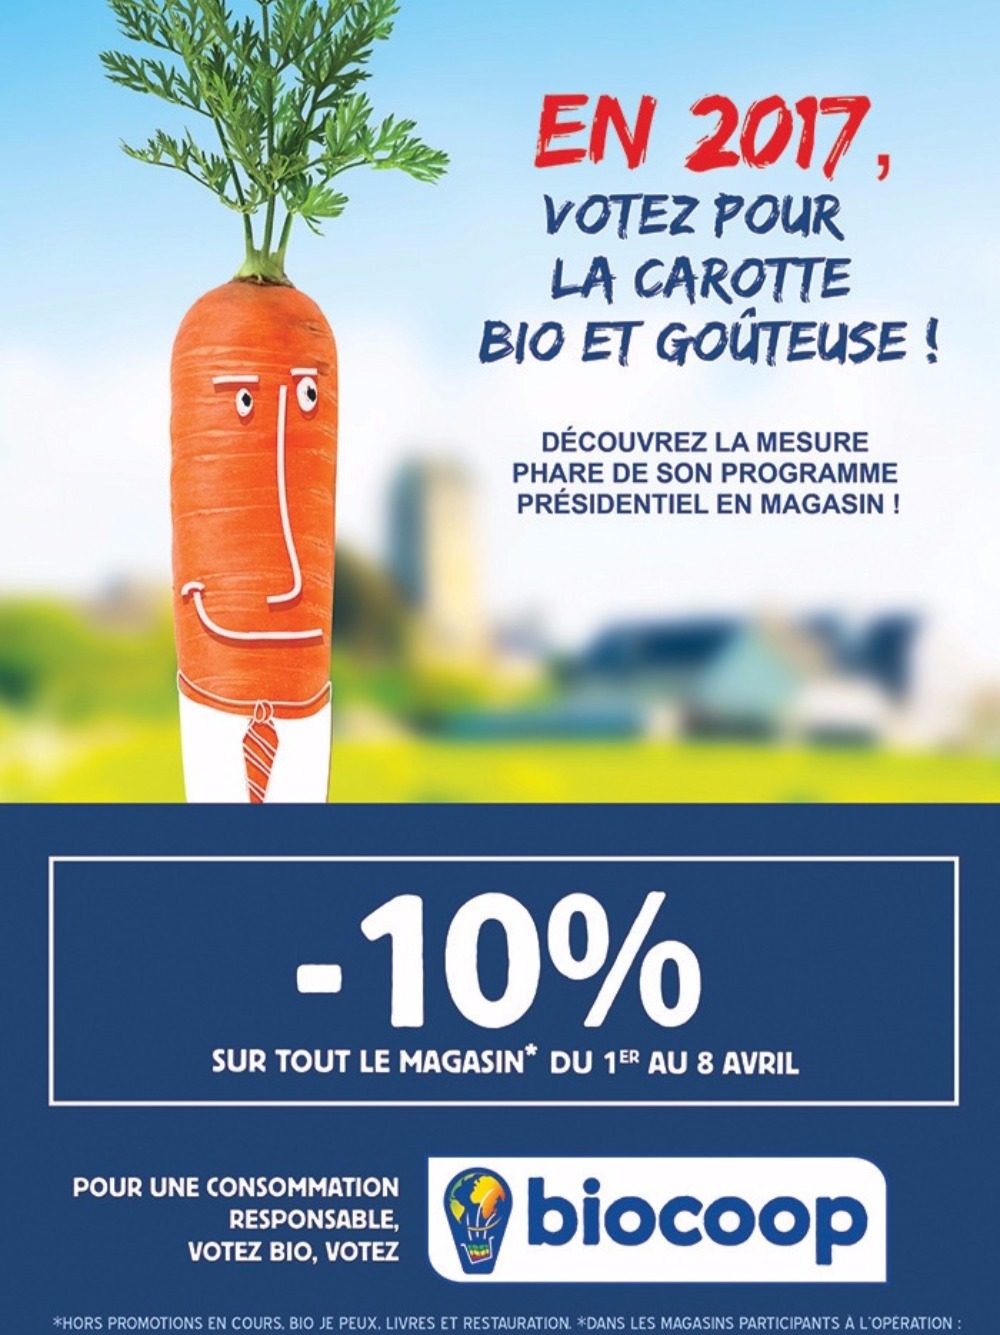 Semaine d'animation au magasin : du 1er au 8 Avril !